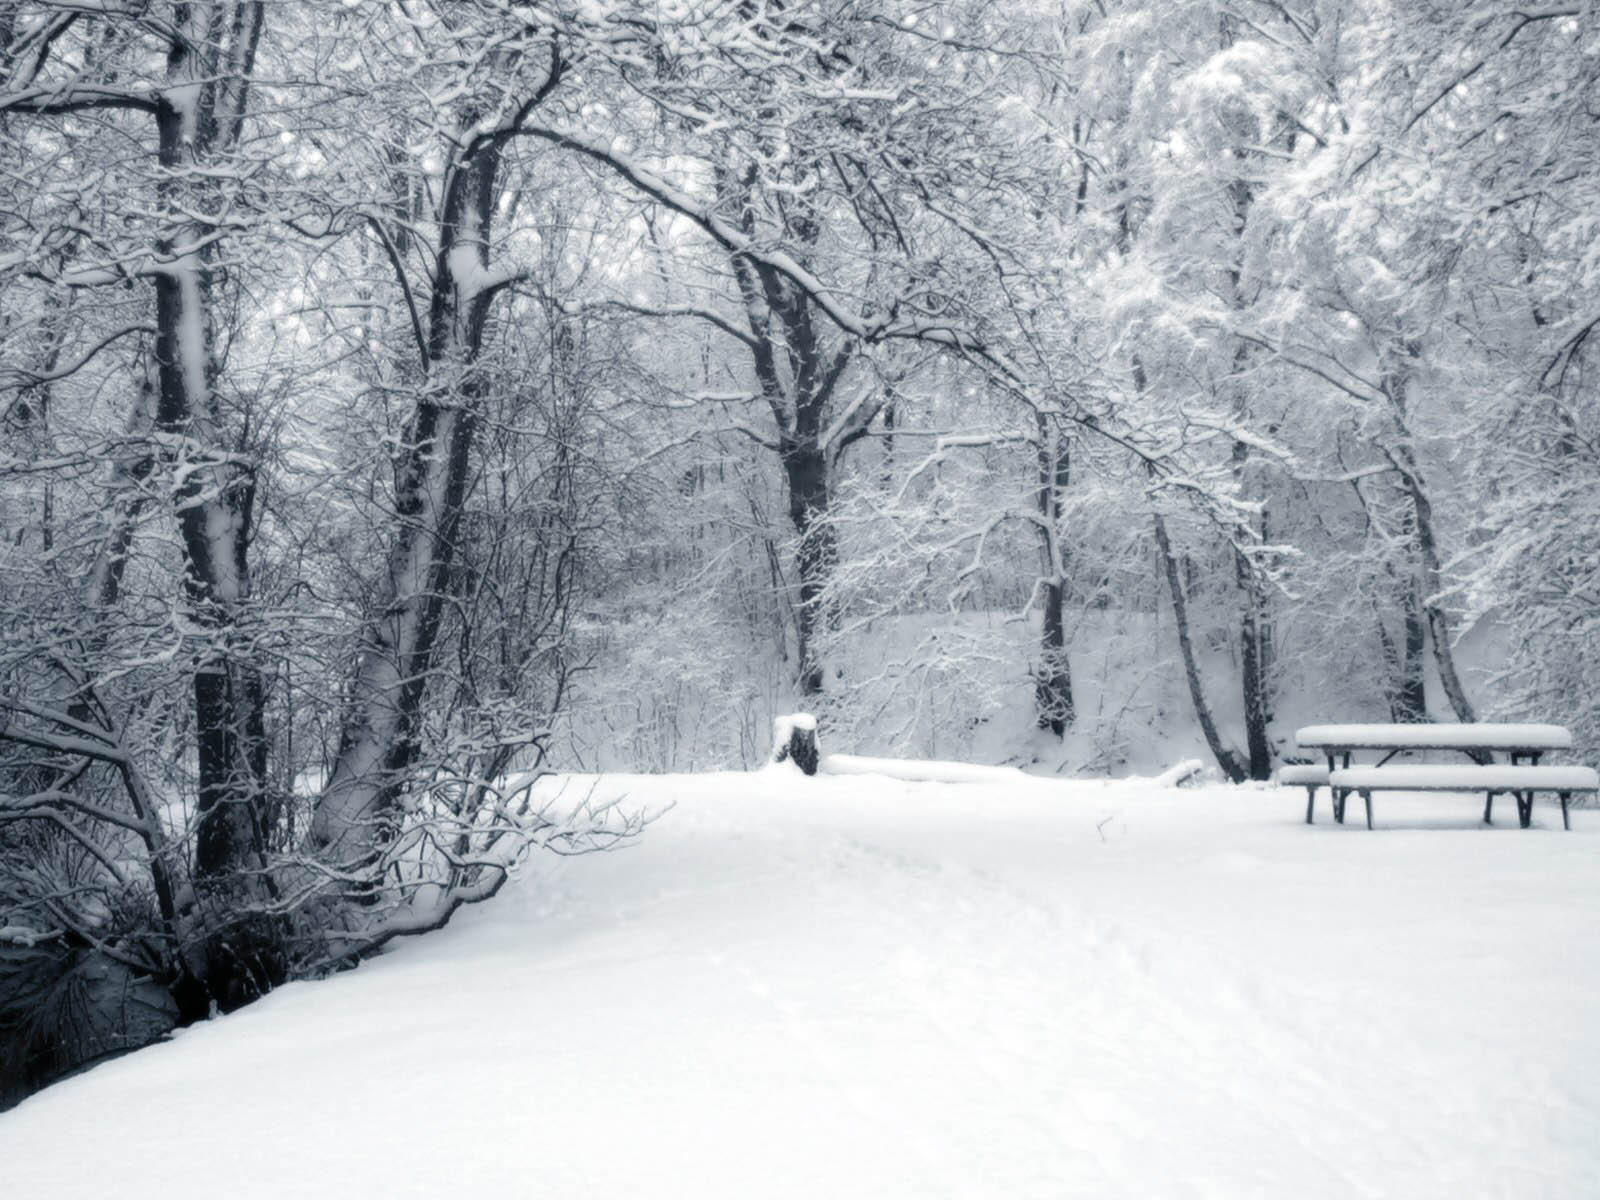 Tag Winter Backgrounds Wallpapers Paos Pictures and Images for 1600x1200